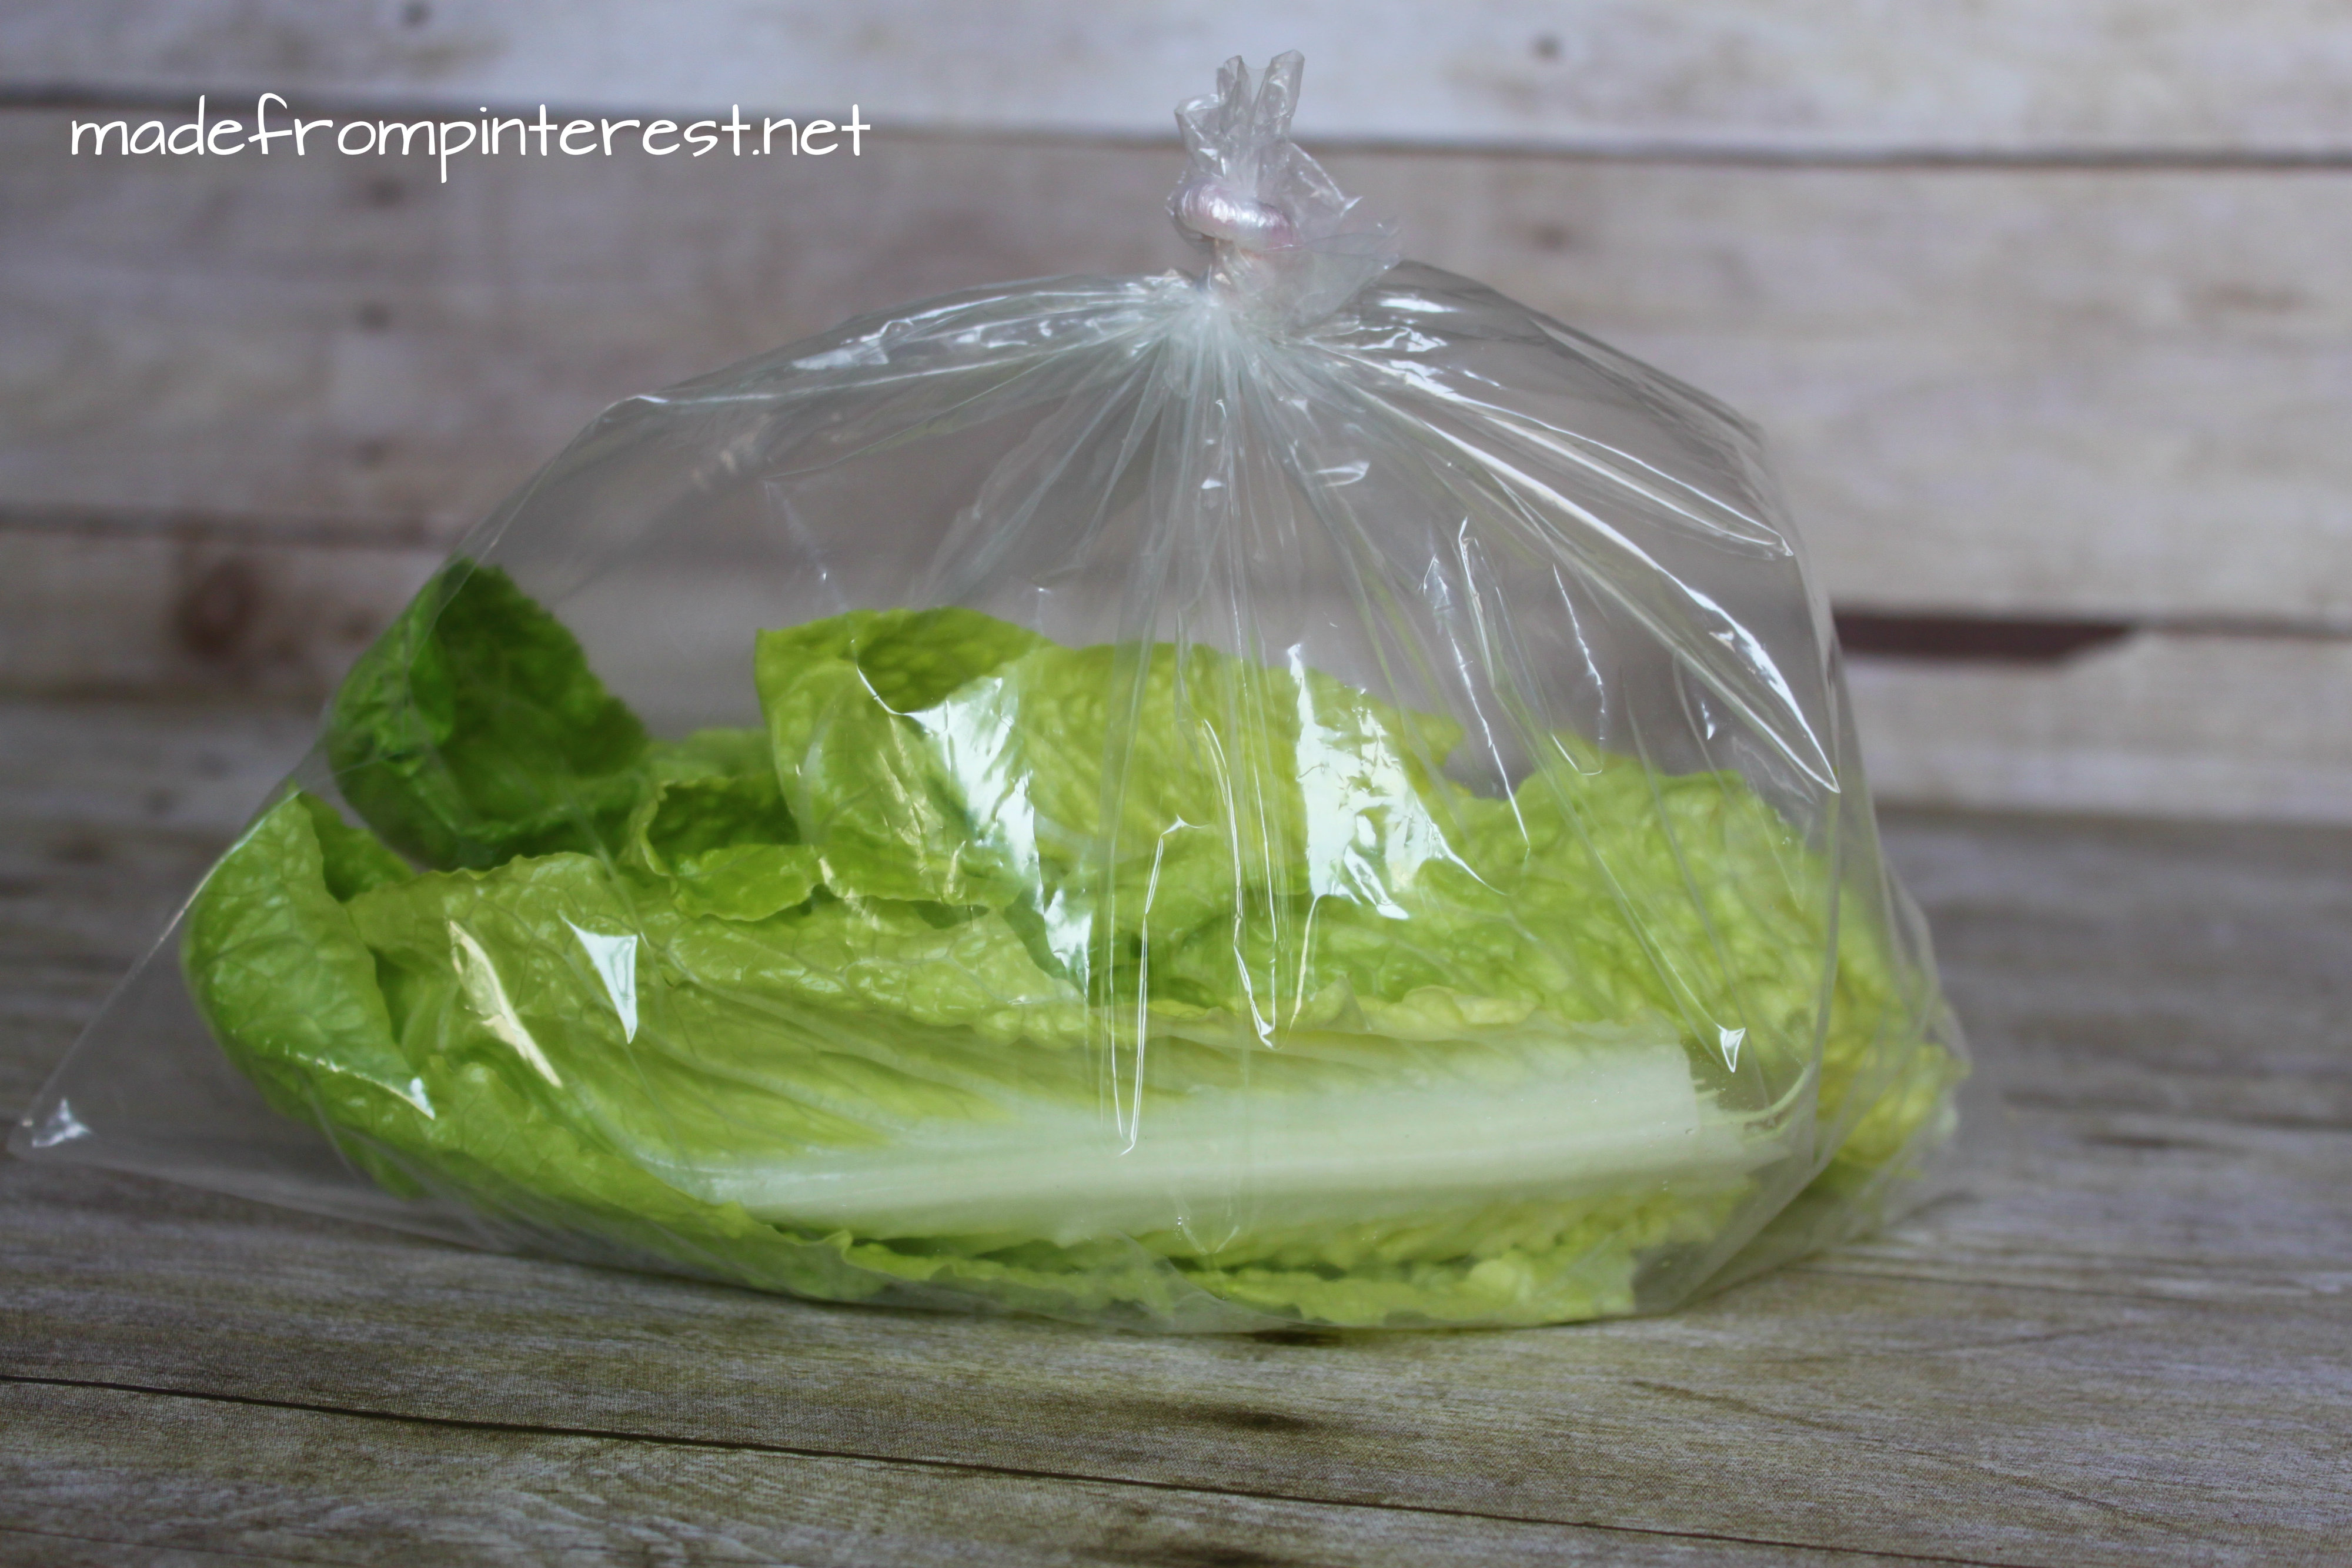 Madefrompinterest.net lettuce storage contest. Blowing air in a bag was a runner up